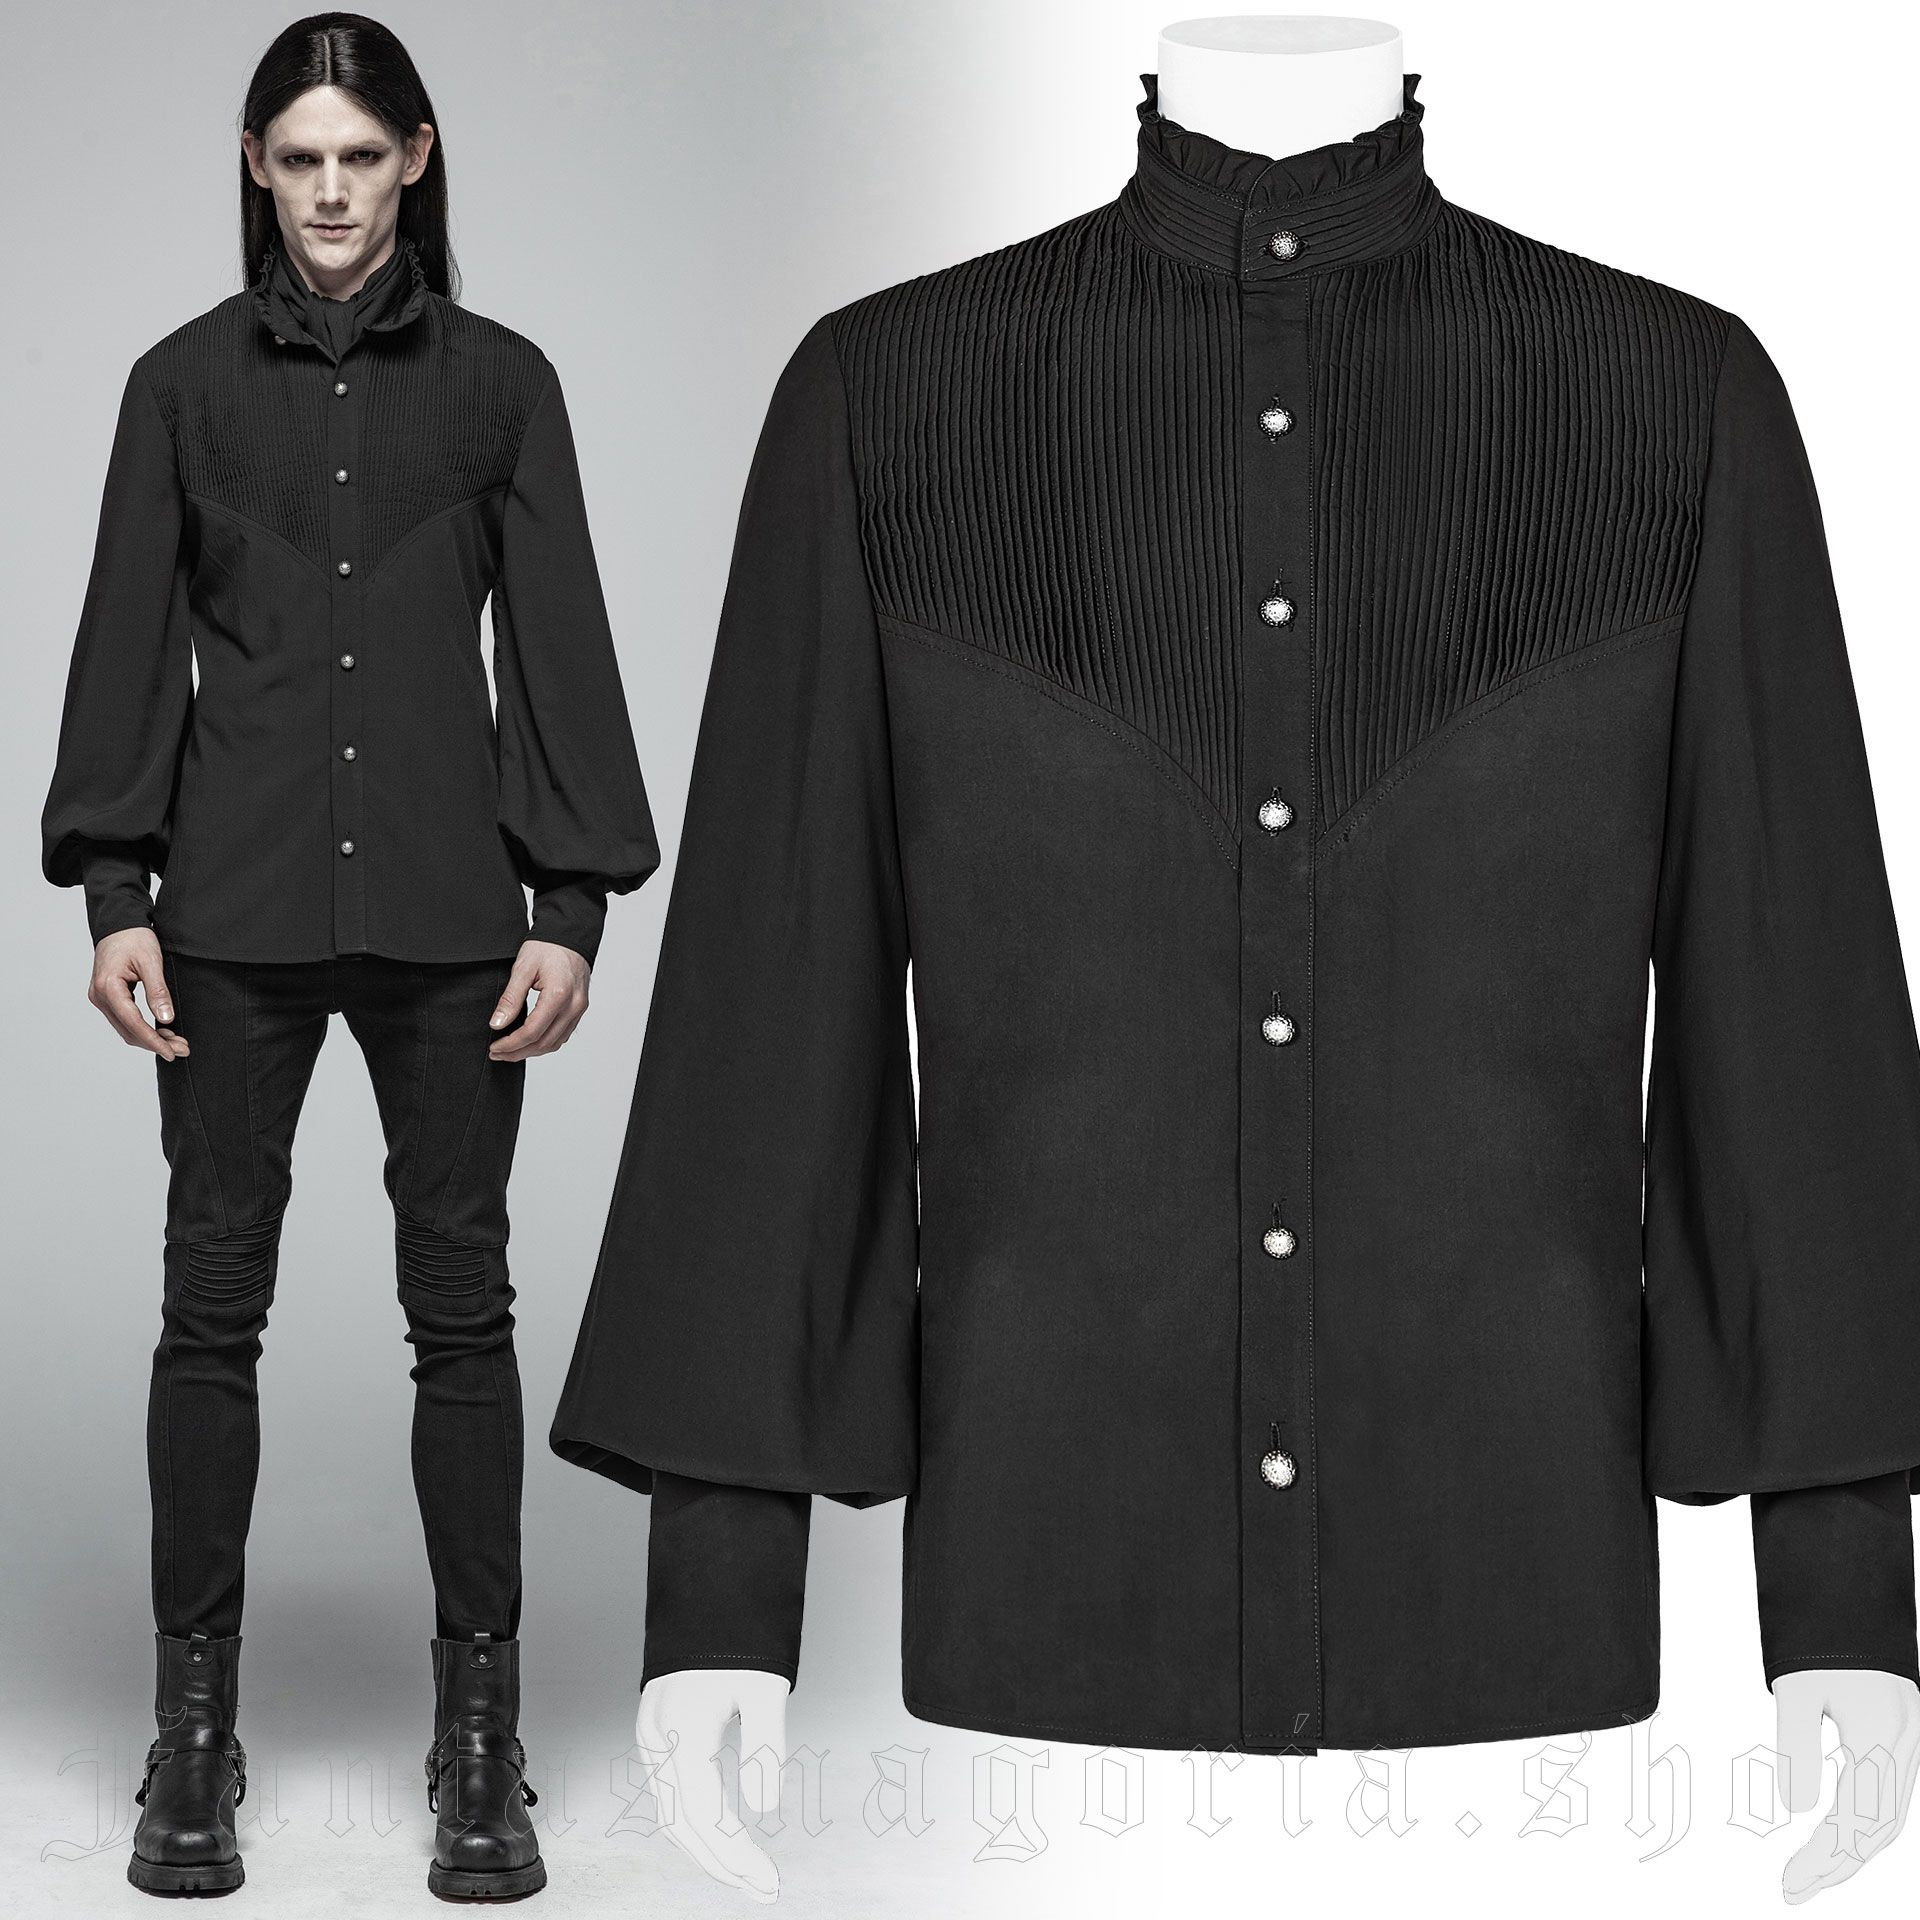 men's Charon Shirt by PUNK RAVE brand, code: WY-1029/BK